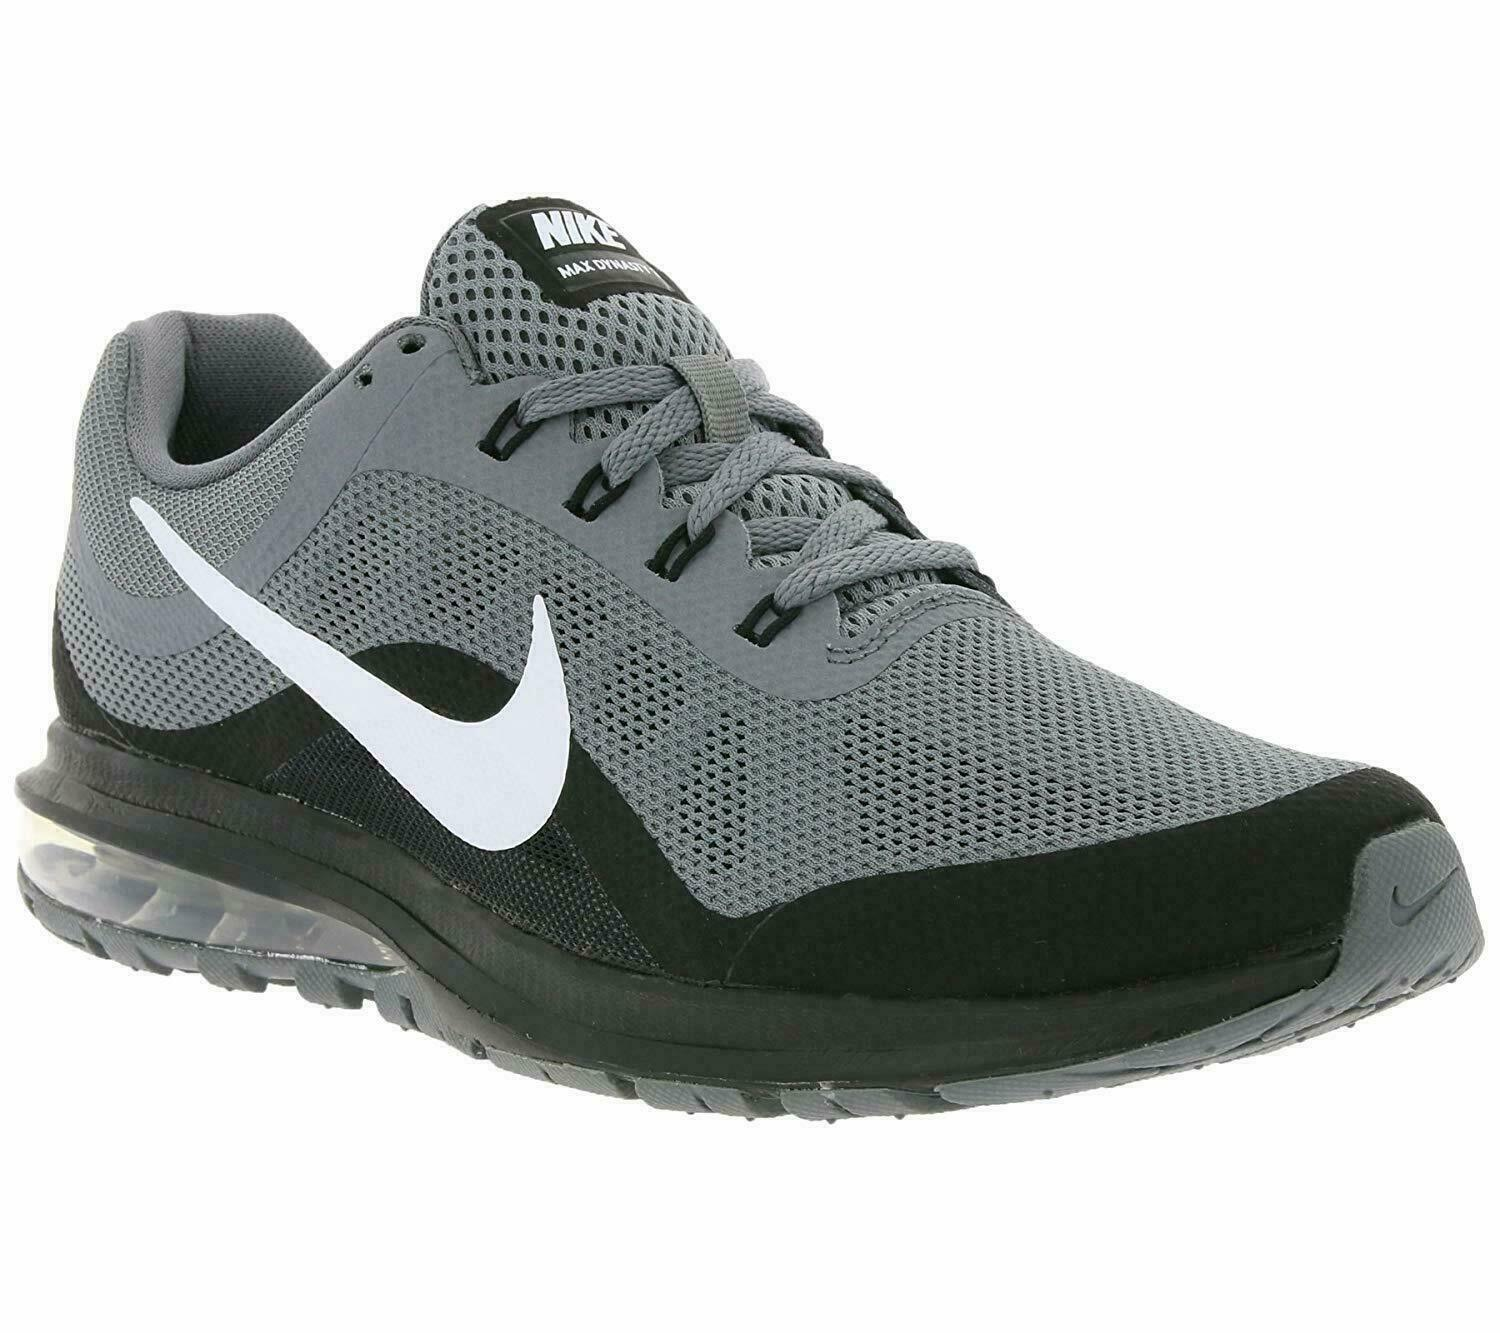 Nike Men's Air Max Dynasty 2 Running shoes Black Grey 852430-006 Size 9 - 11